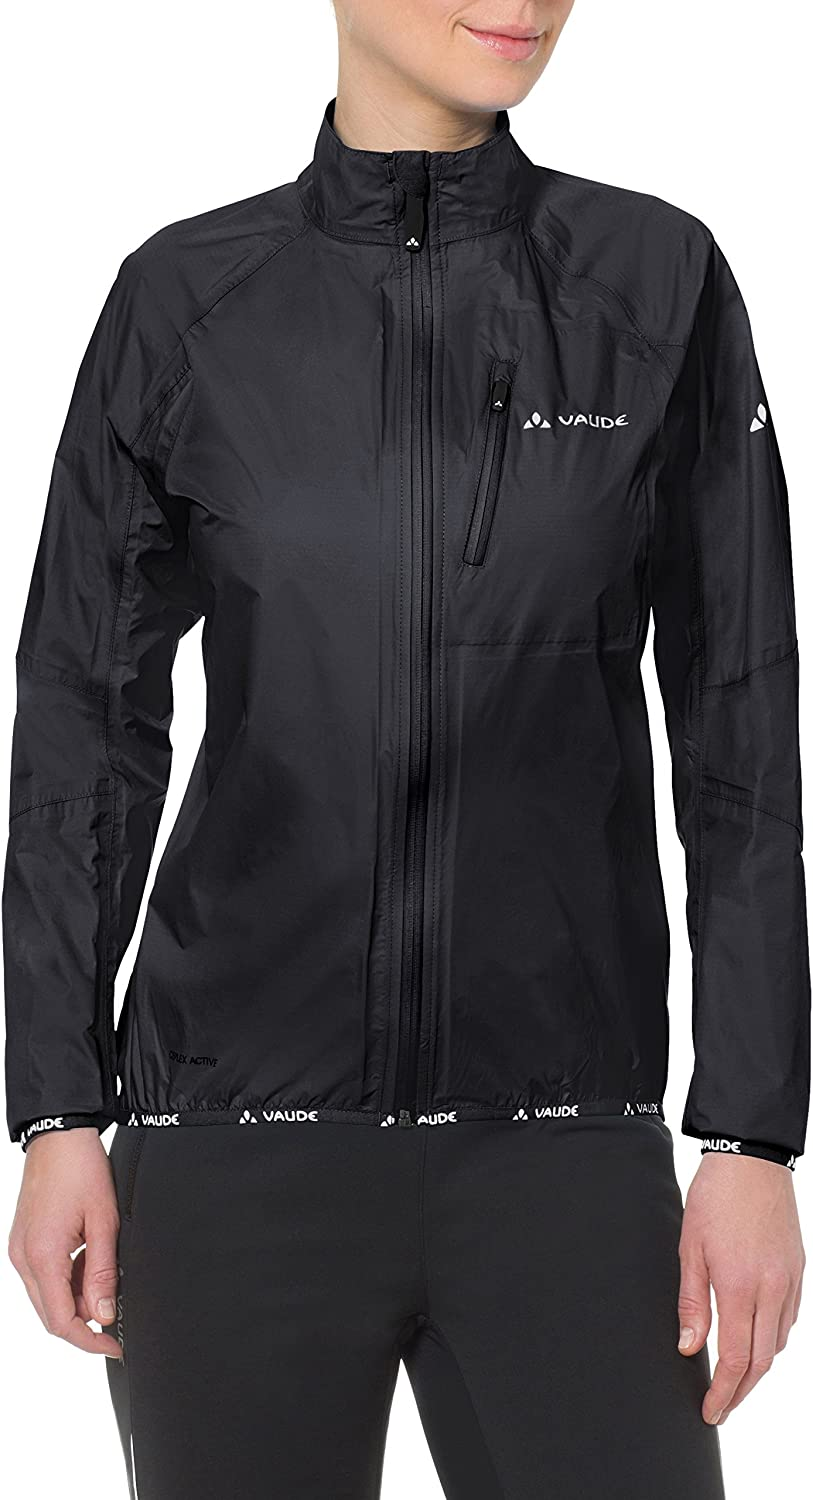 VAUDE Women's Drop III Jacket